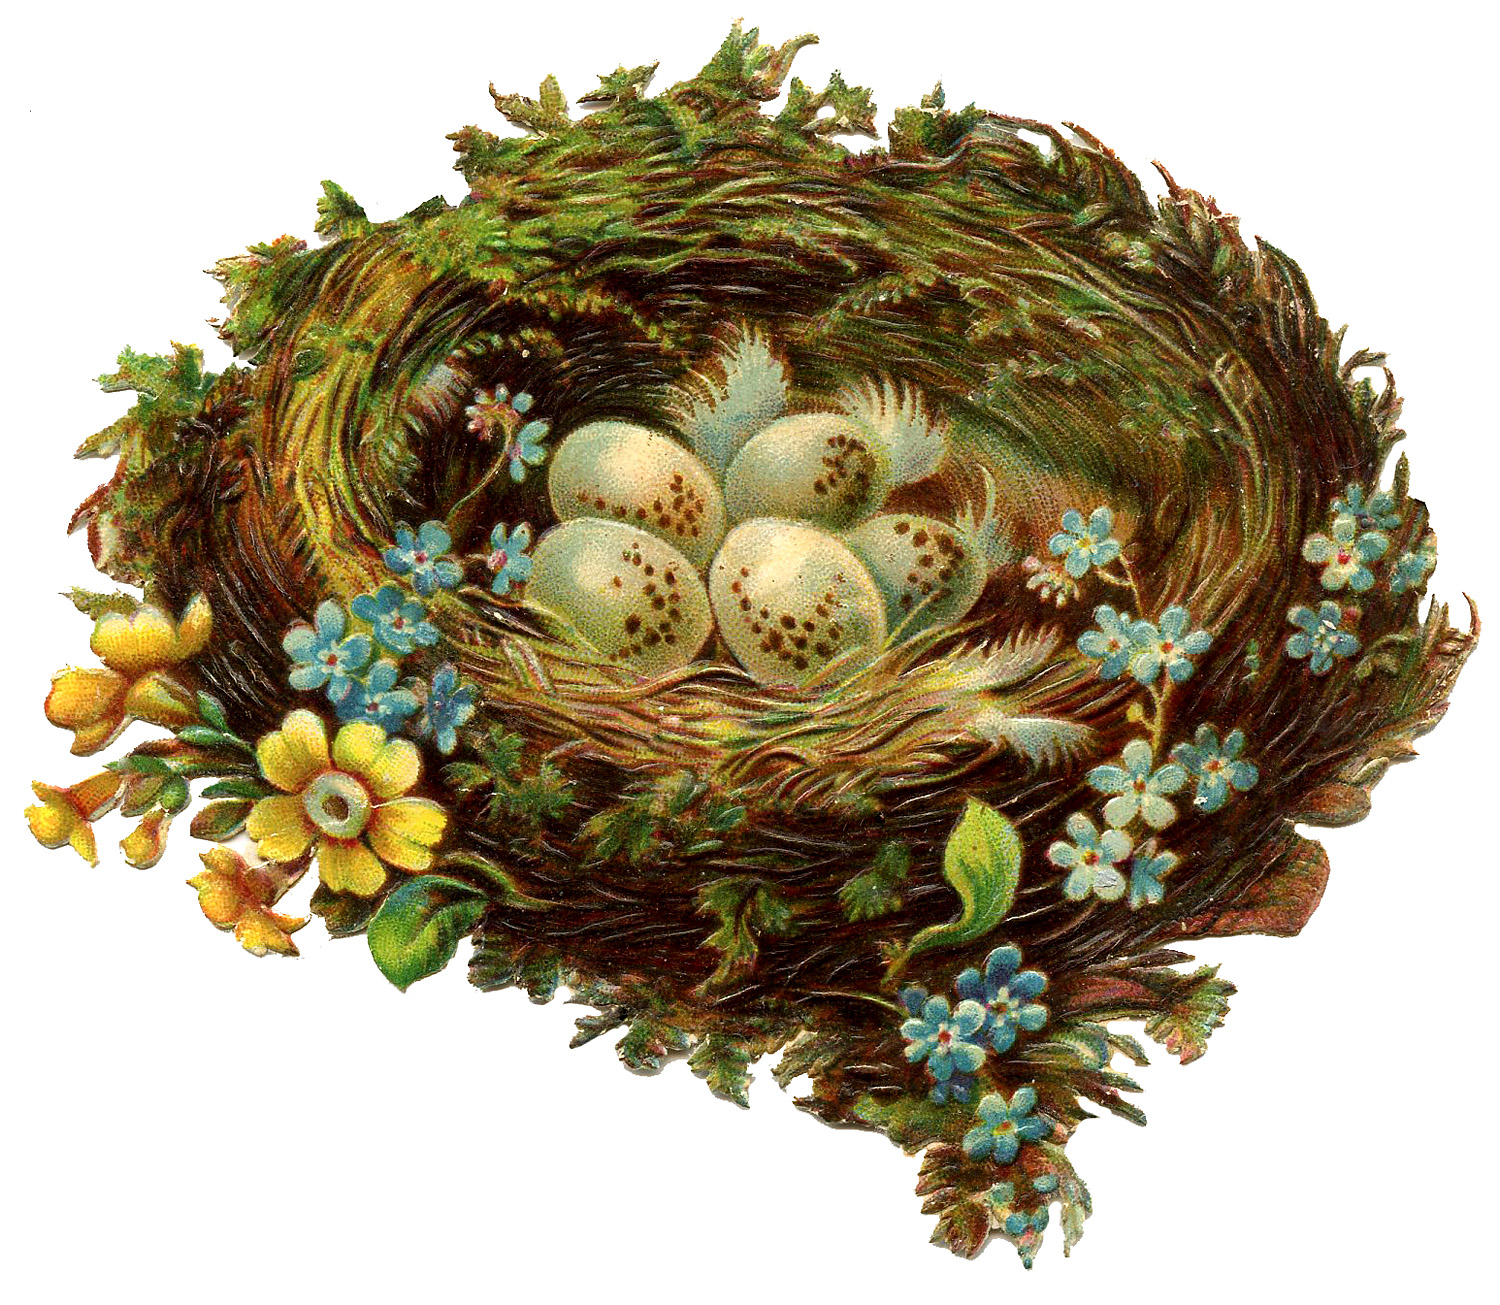 Vintage Graphic - Pretty Nest with Eggs & Flowers - The Graphics Fairy